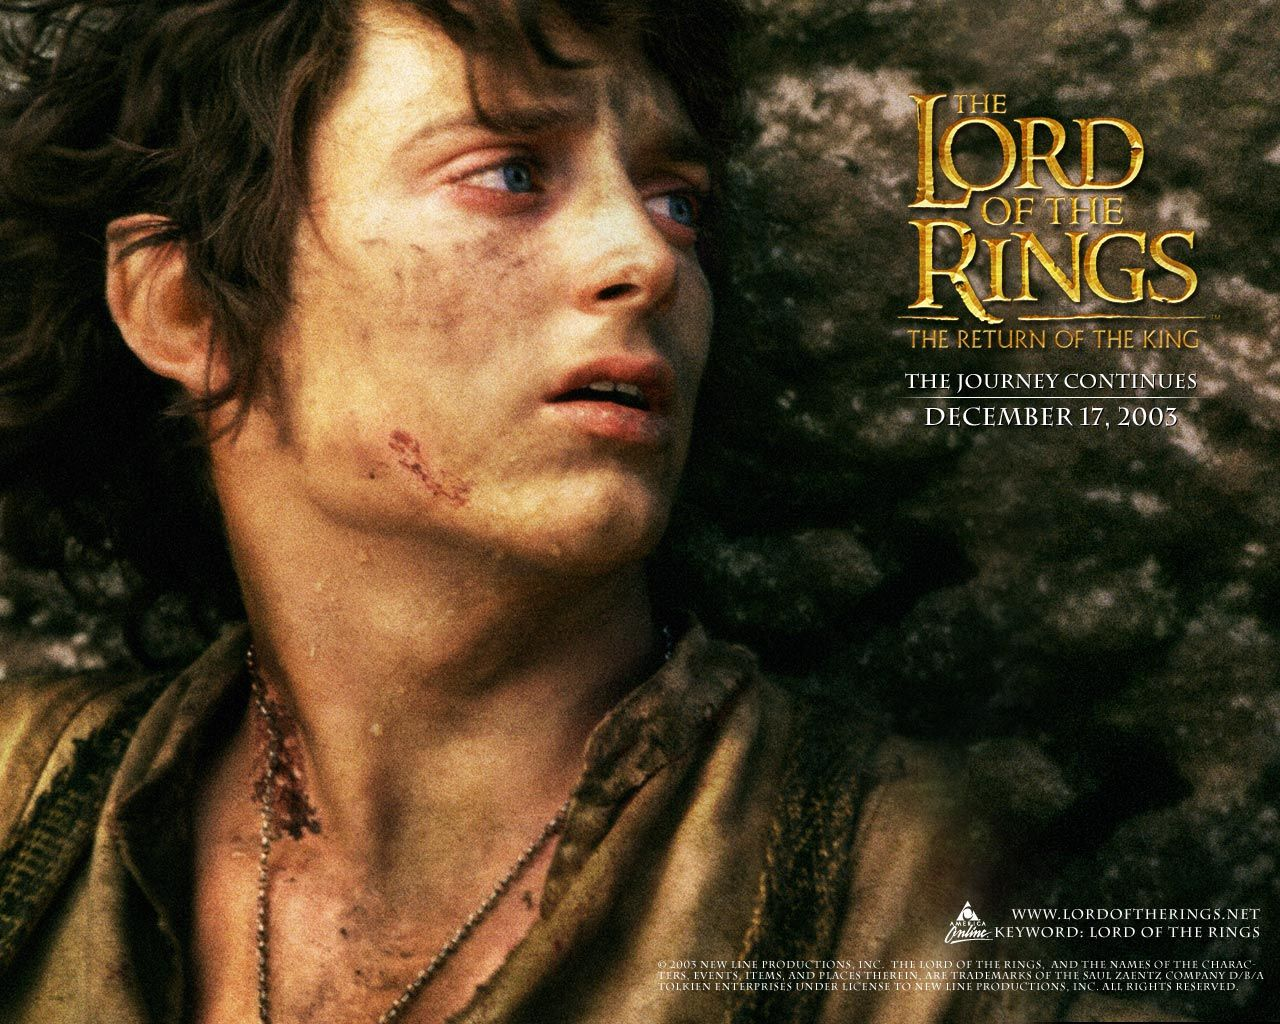 the then rings lord comparison get photos action with sam we frodo lotr apart three accuracy fall htm i of stills one but review for went dirt grime this things some figures to and start